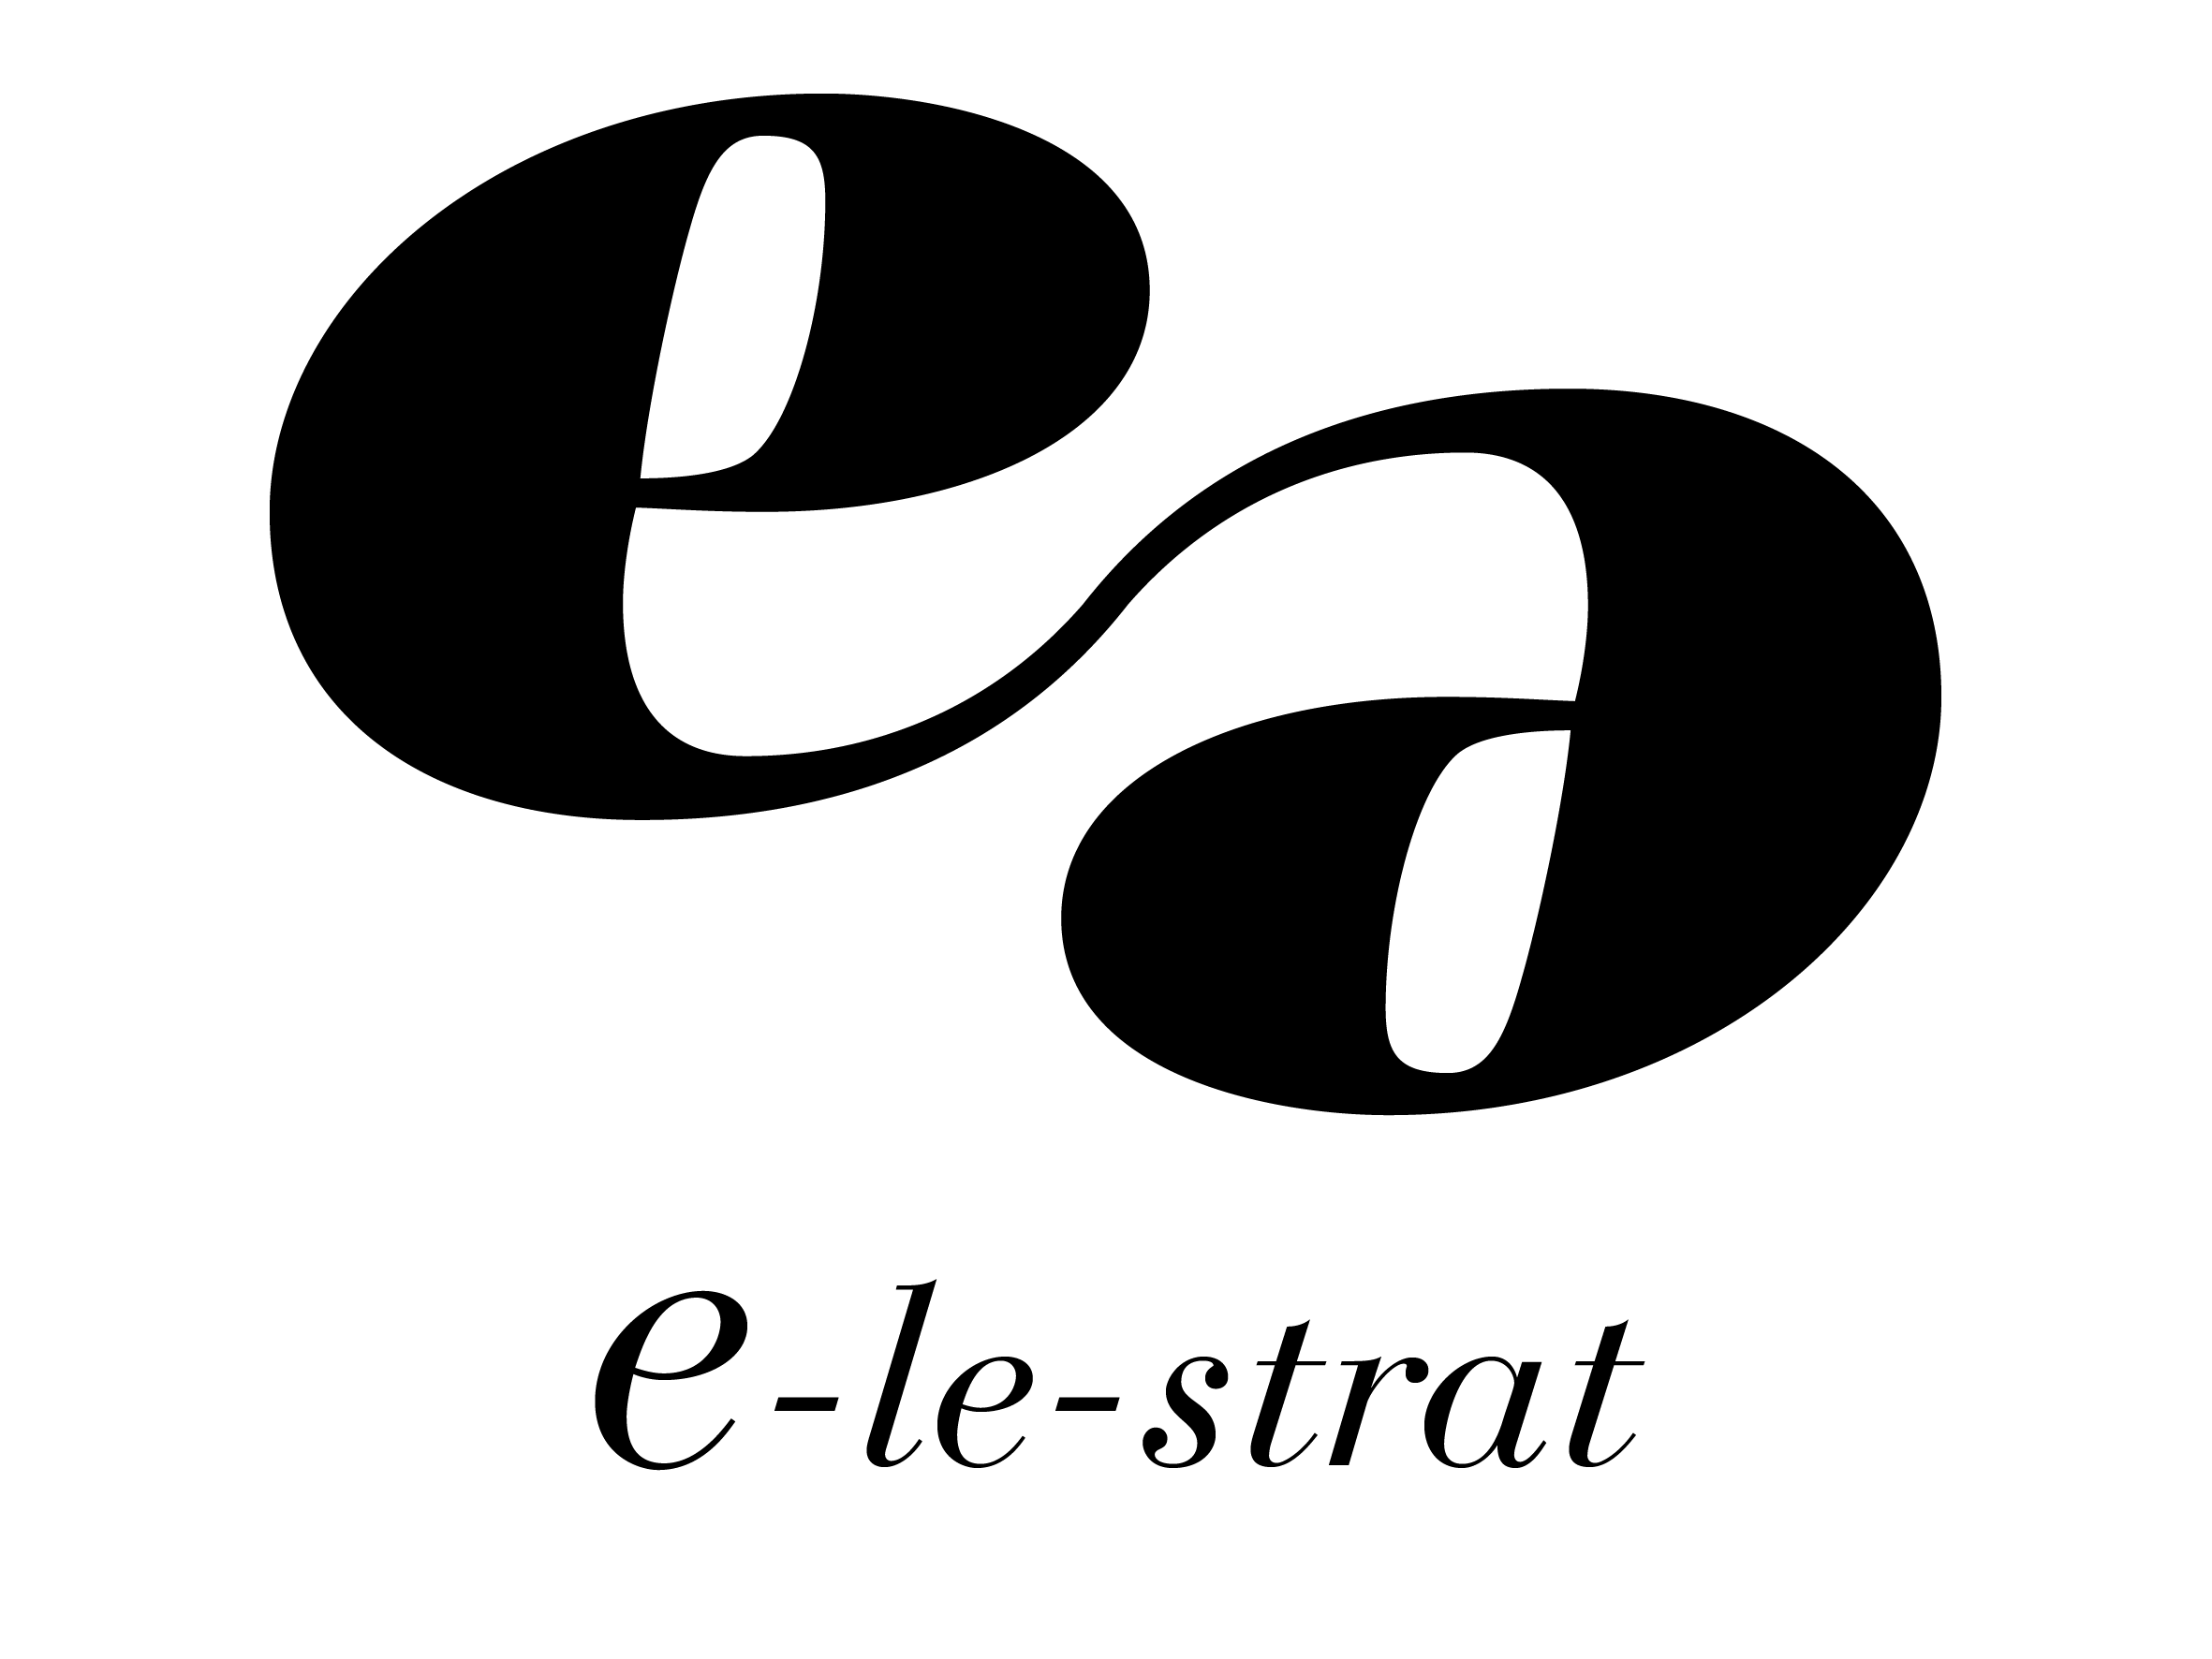 e-le-strat Corporate Coaching, Training & Facilitation